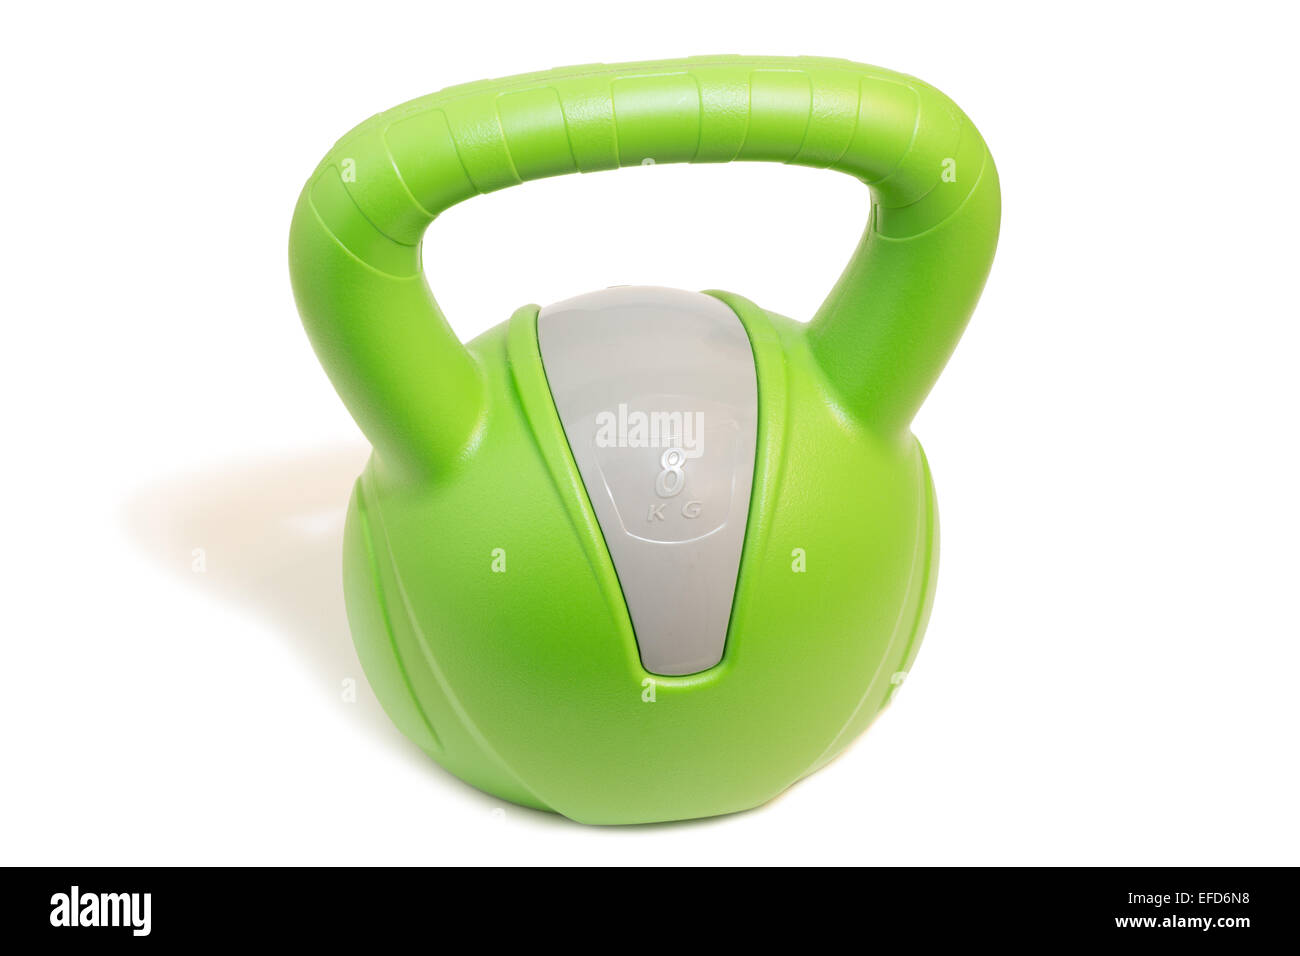 Closeup of a green 8 kg kettlebell, isolated on white background - Stock Image